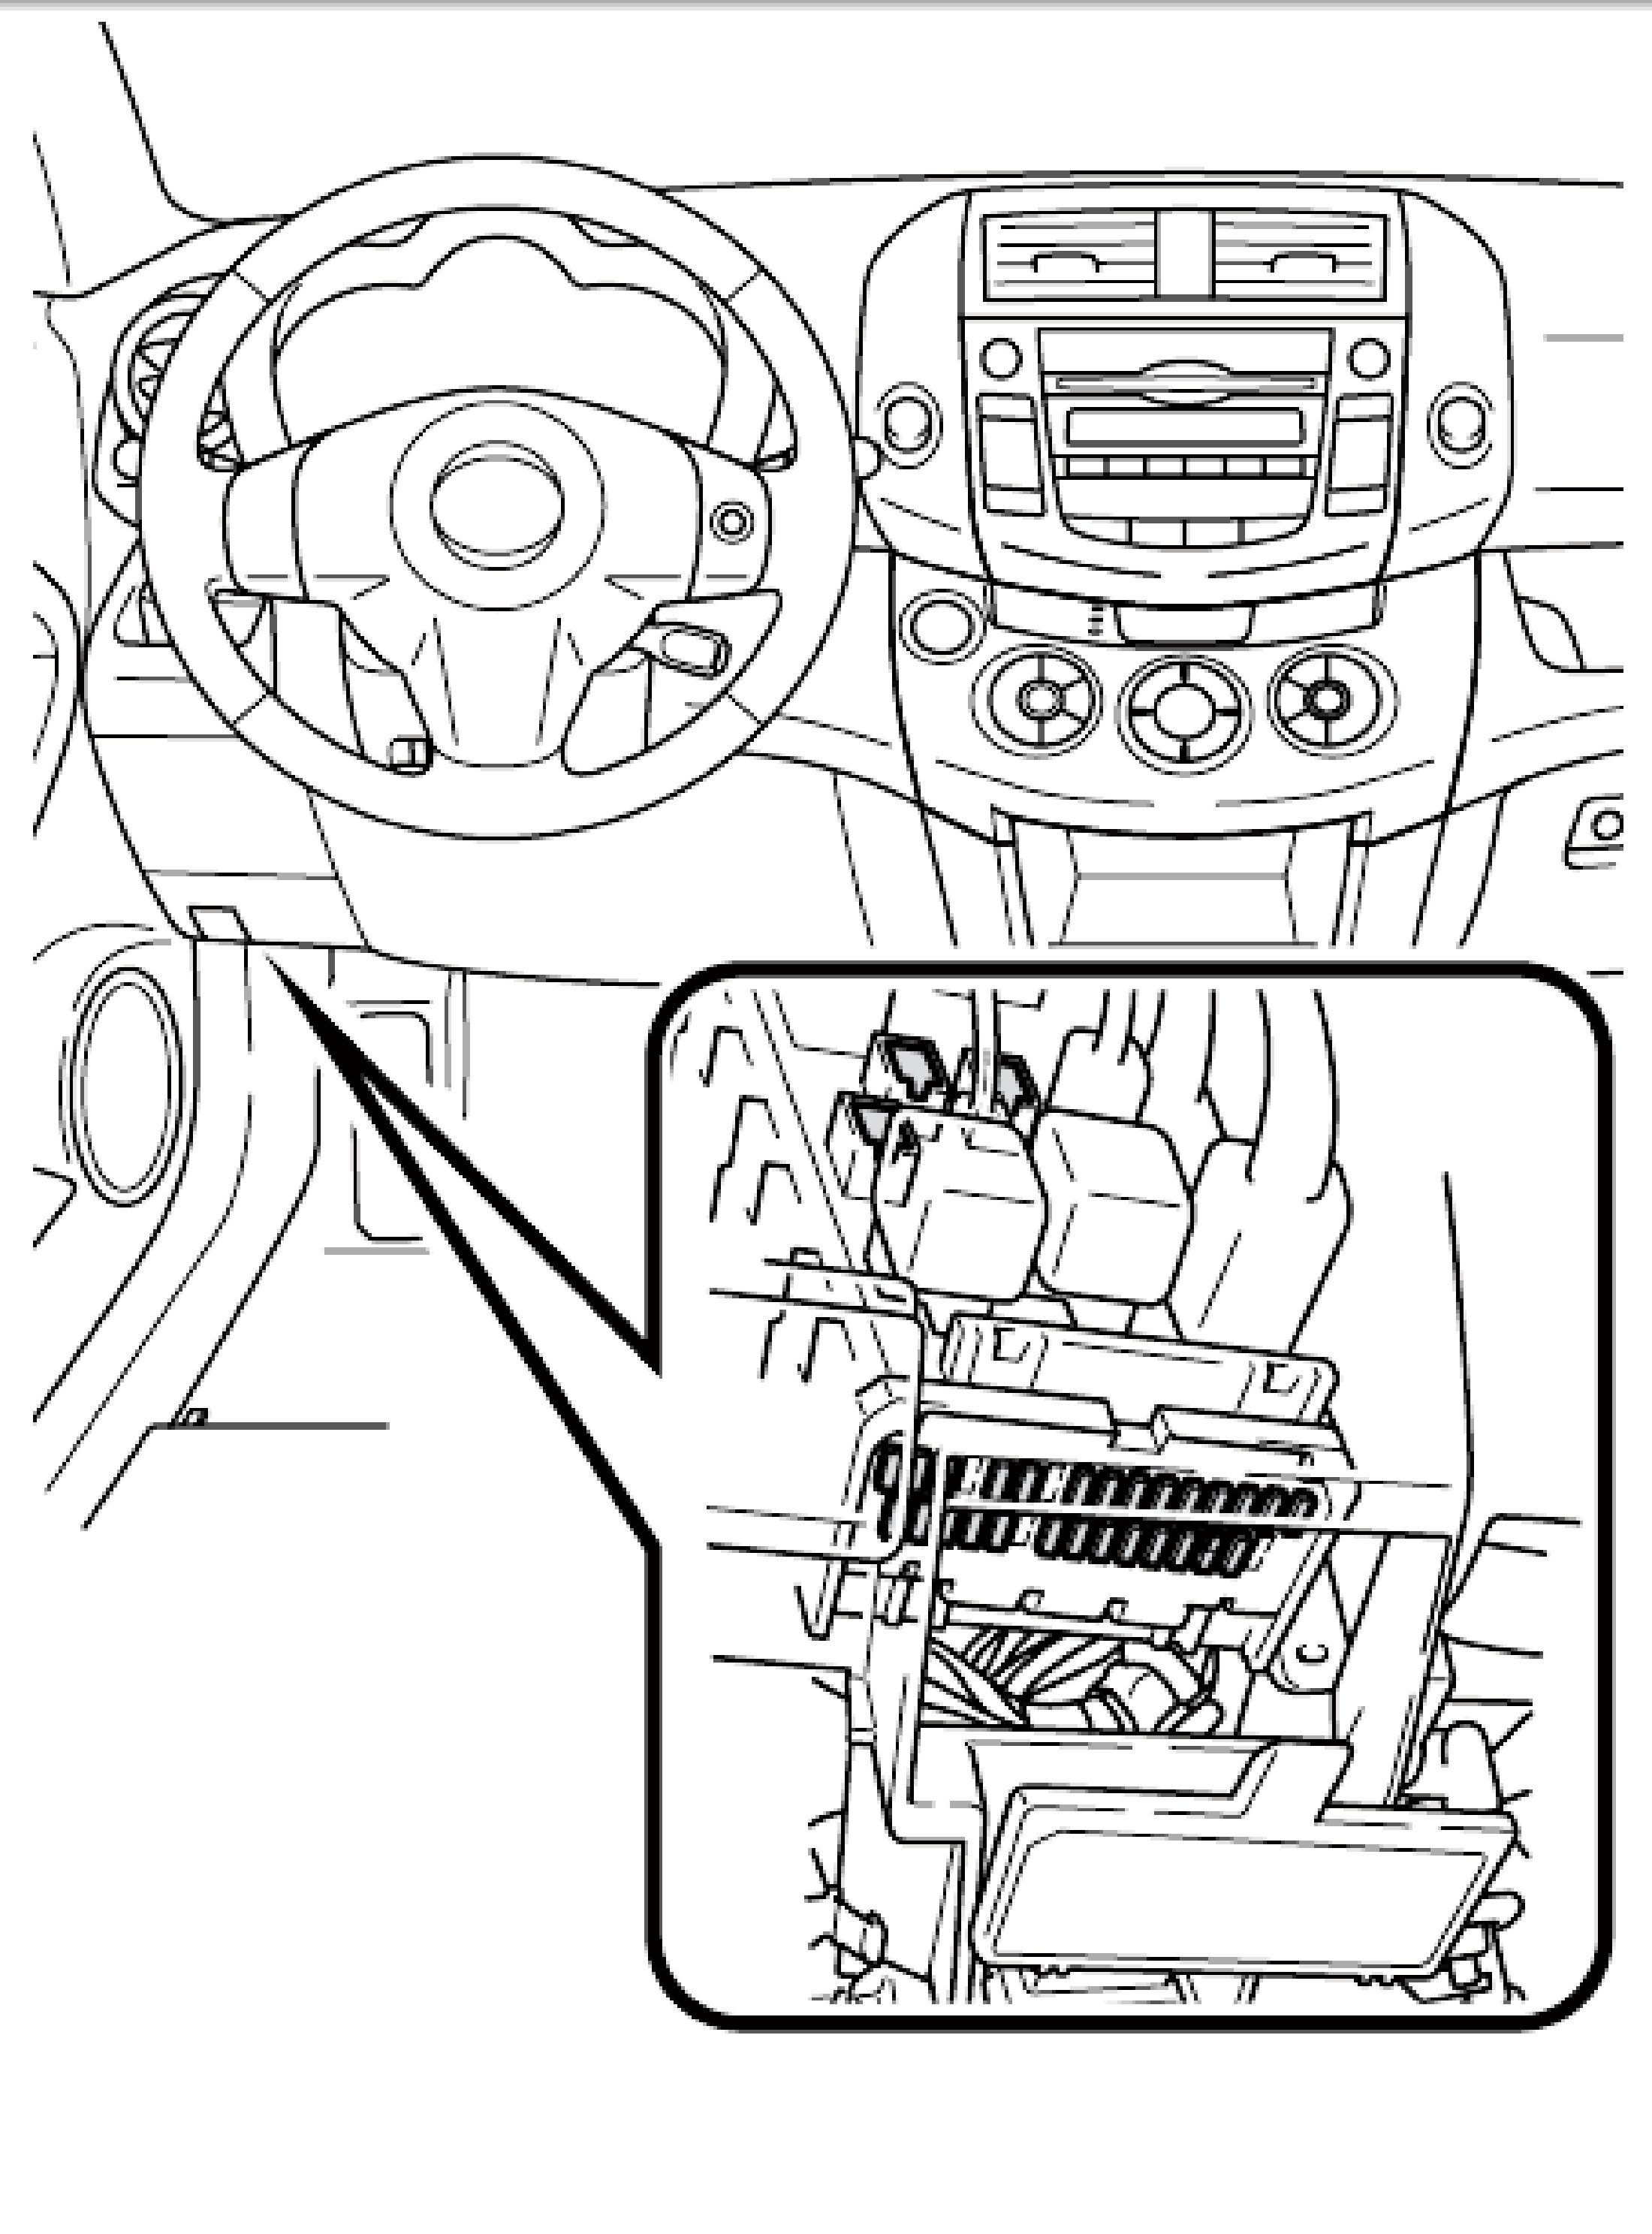 ... toyota rav4 fuse box location GCKEDBA rav4 fuse box location 1998 wiring  diagrams instruction 2014 rav4